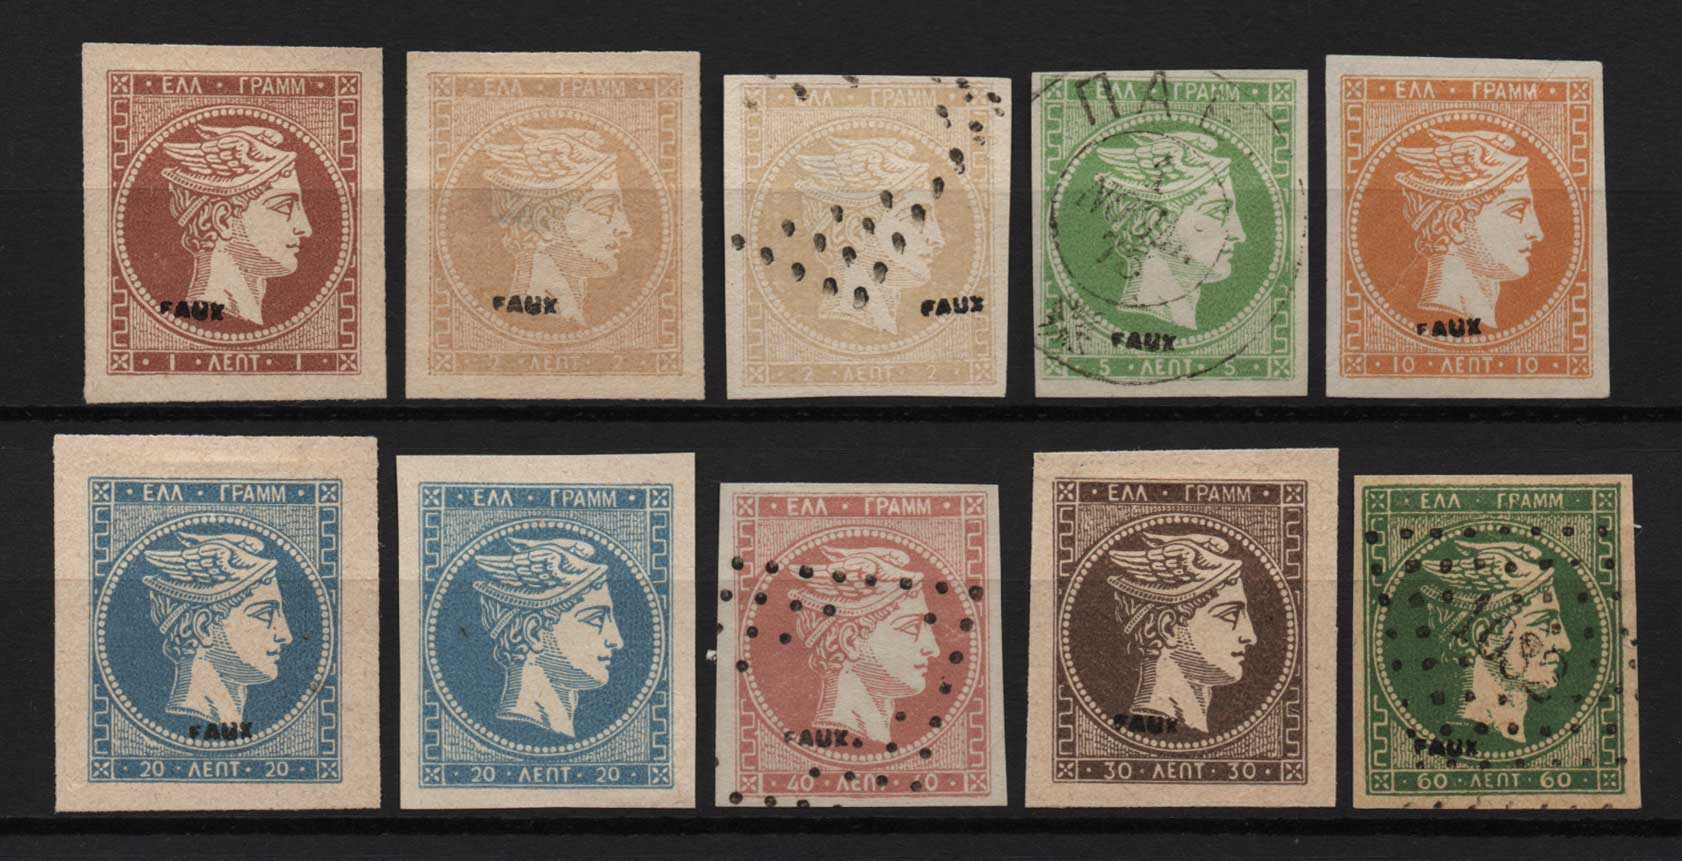 Lot 28 - - FORGERY forgery -  Athens Auctions Public Auction 69 General Stamp Sale